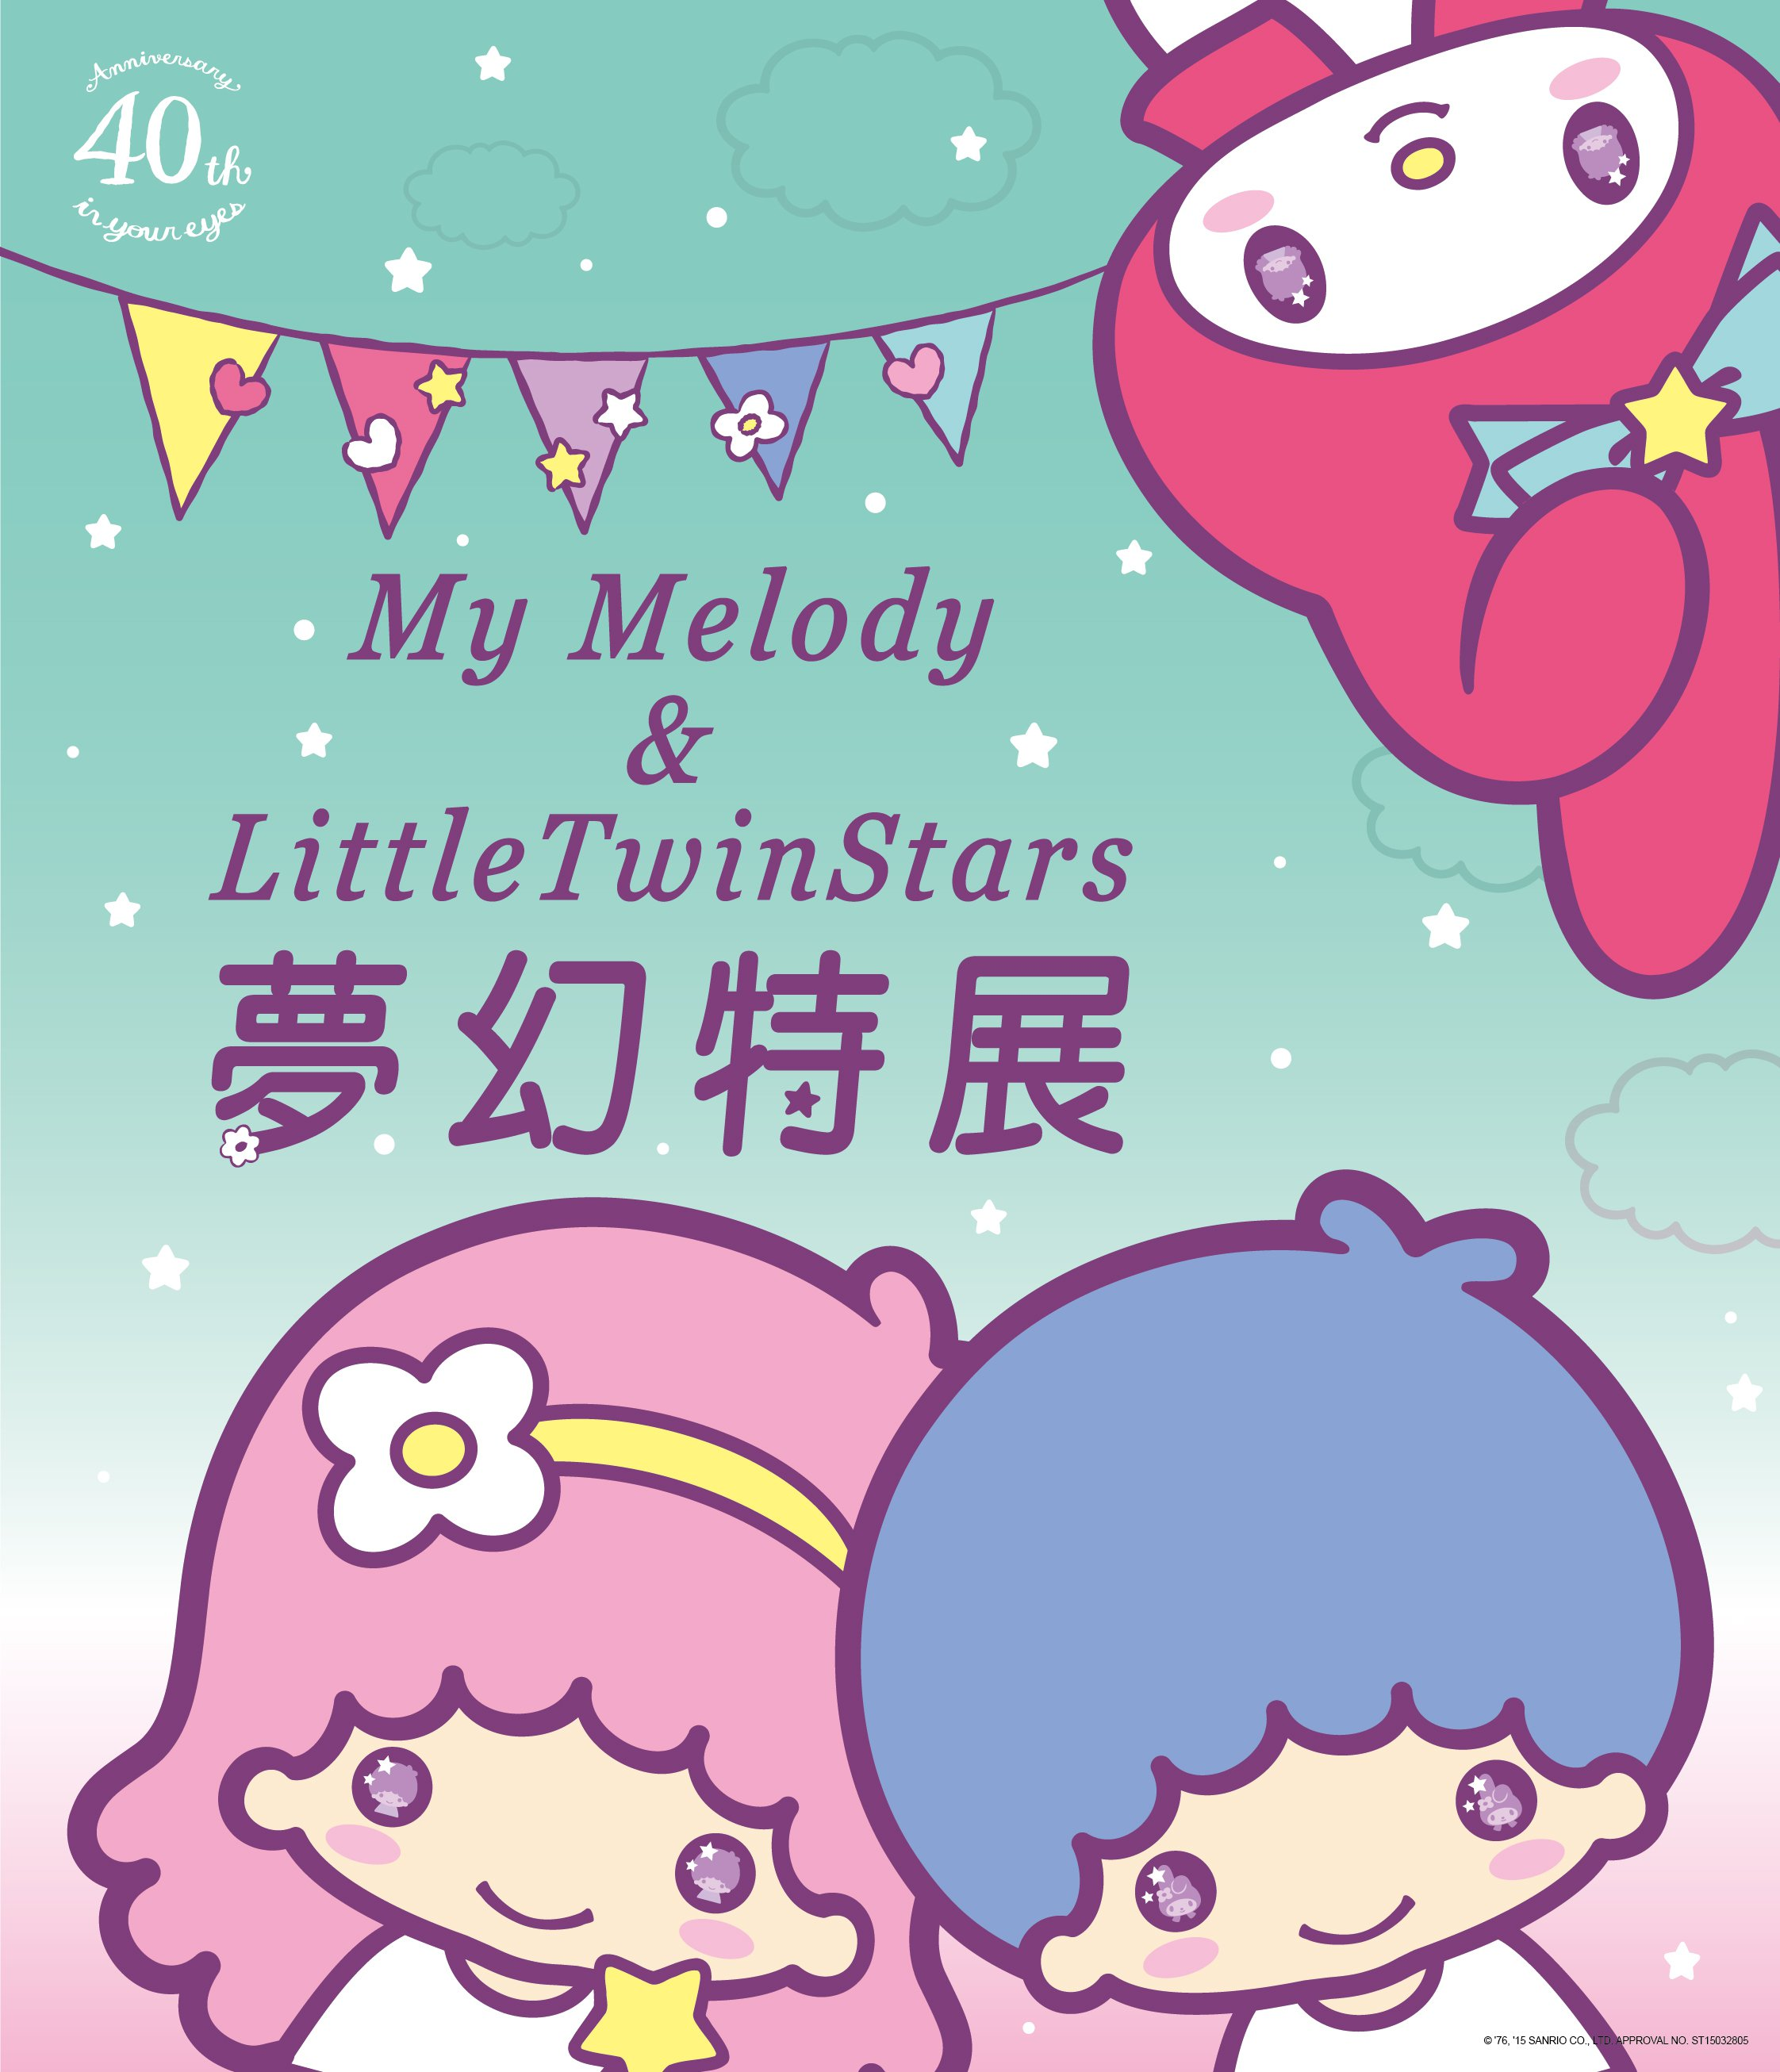 My Melody & Little Twin Stars夢幻特展